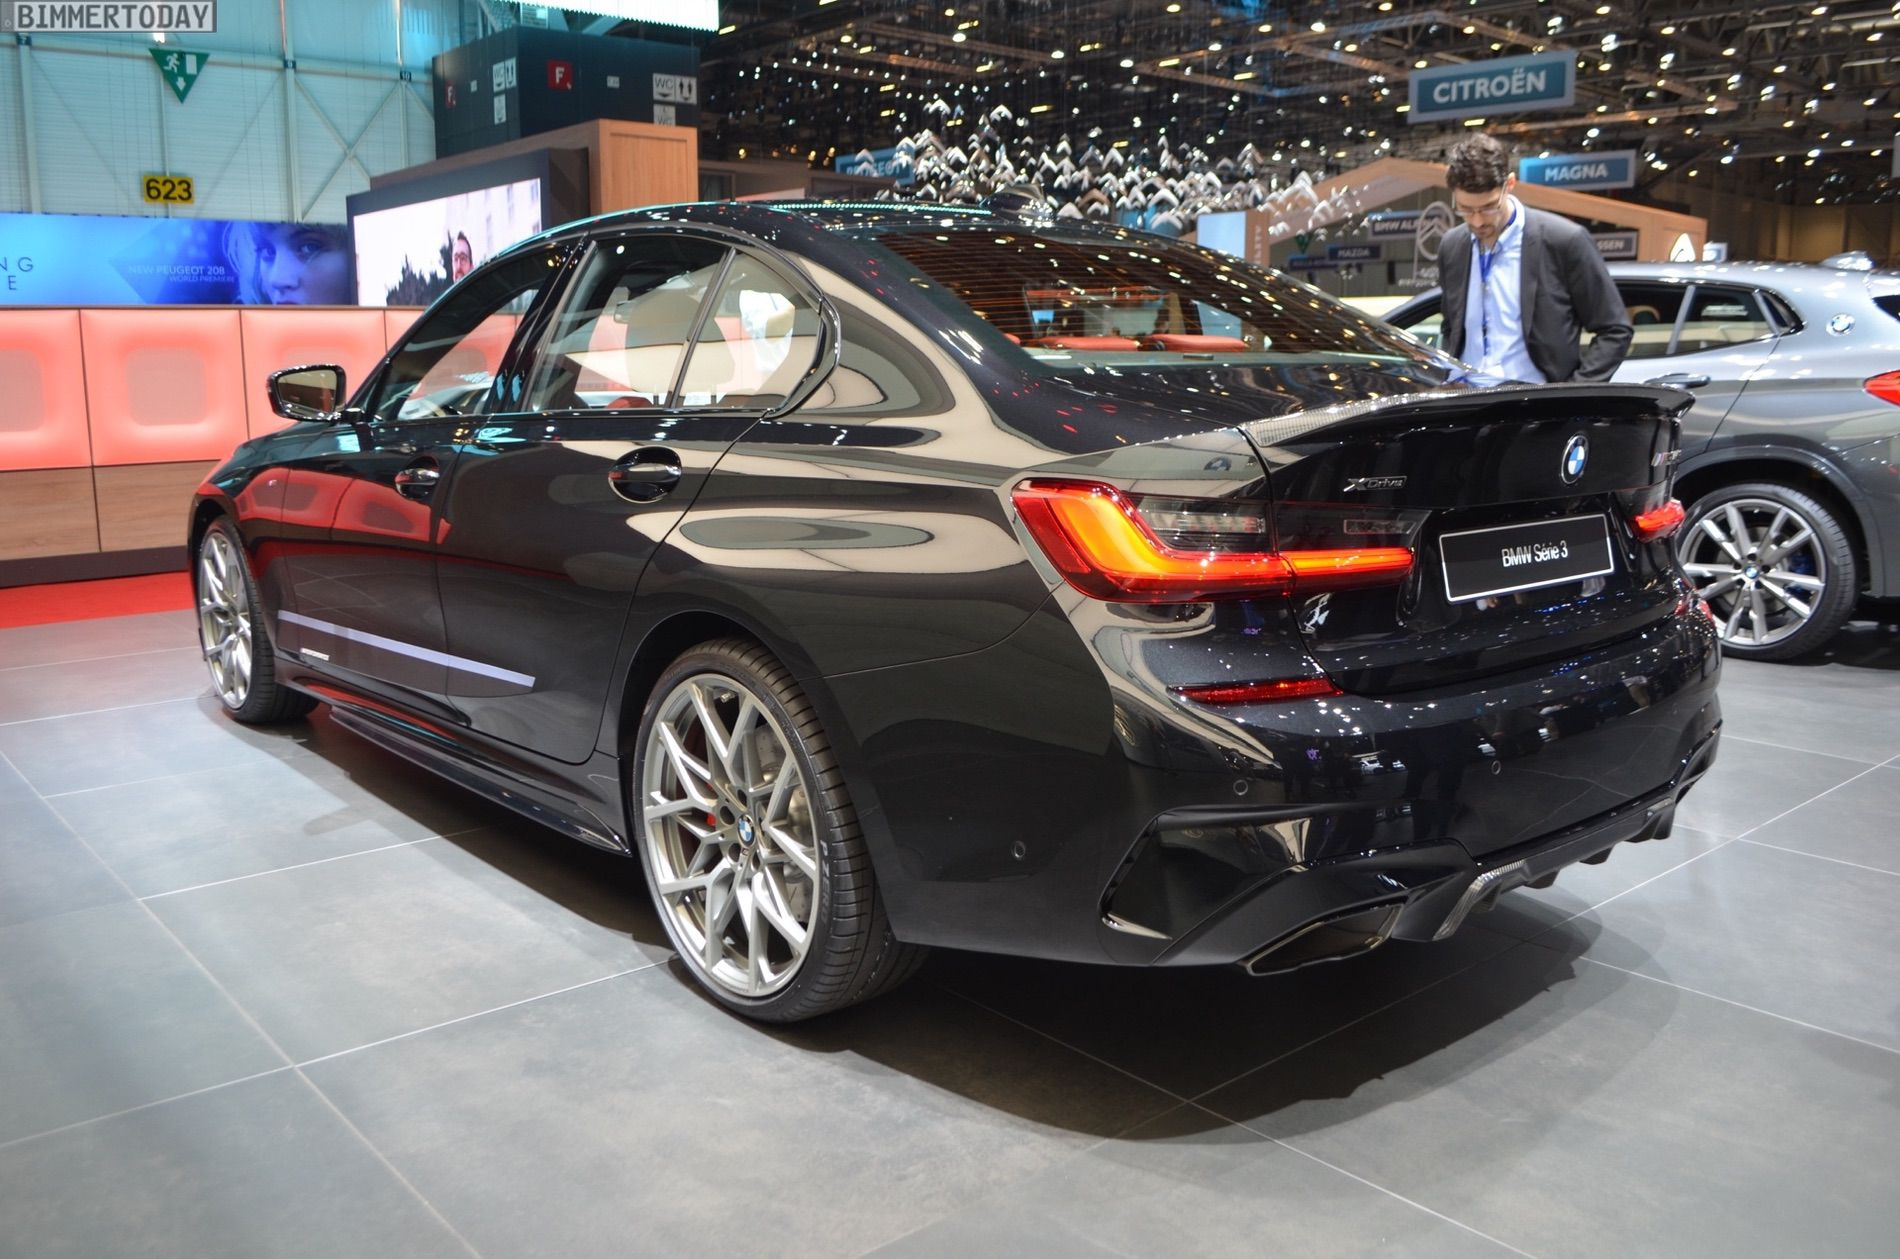 Geneva 2019 Bmw M340i G20 With M Performance Parts Cars And News